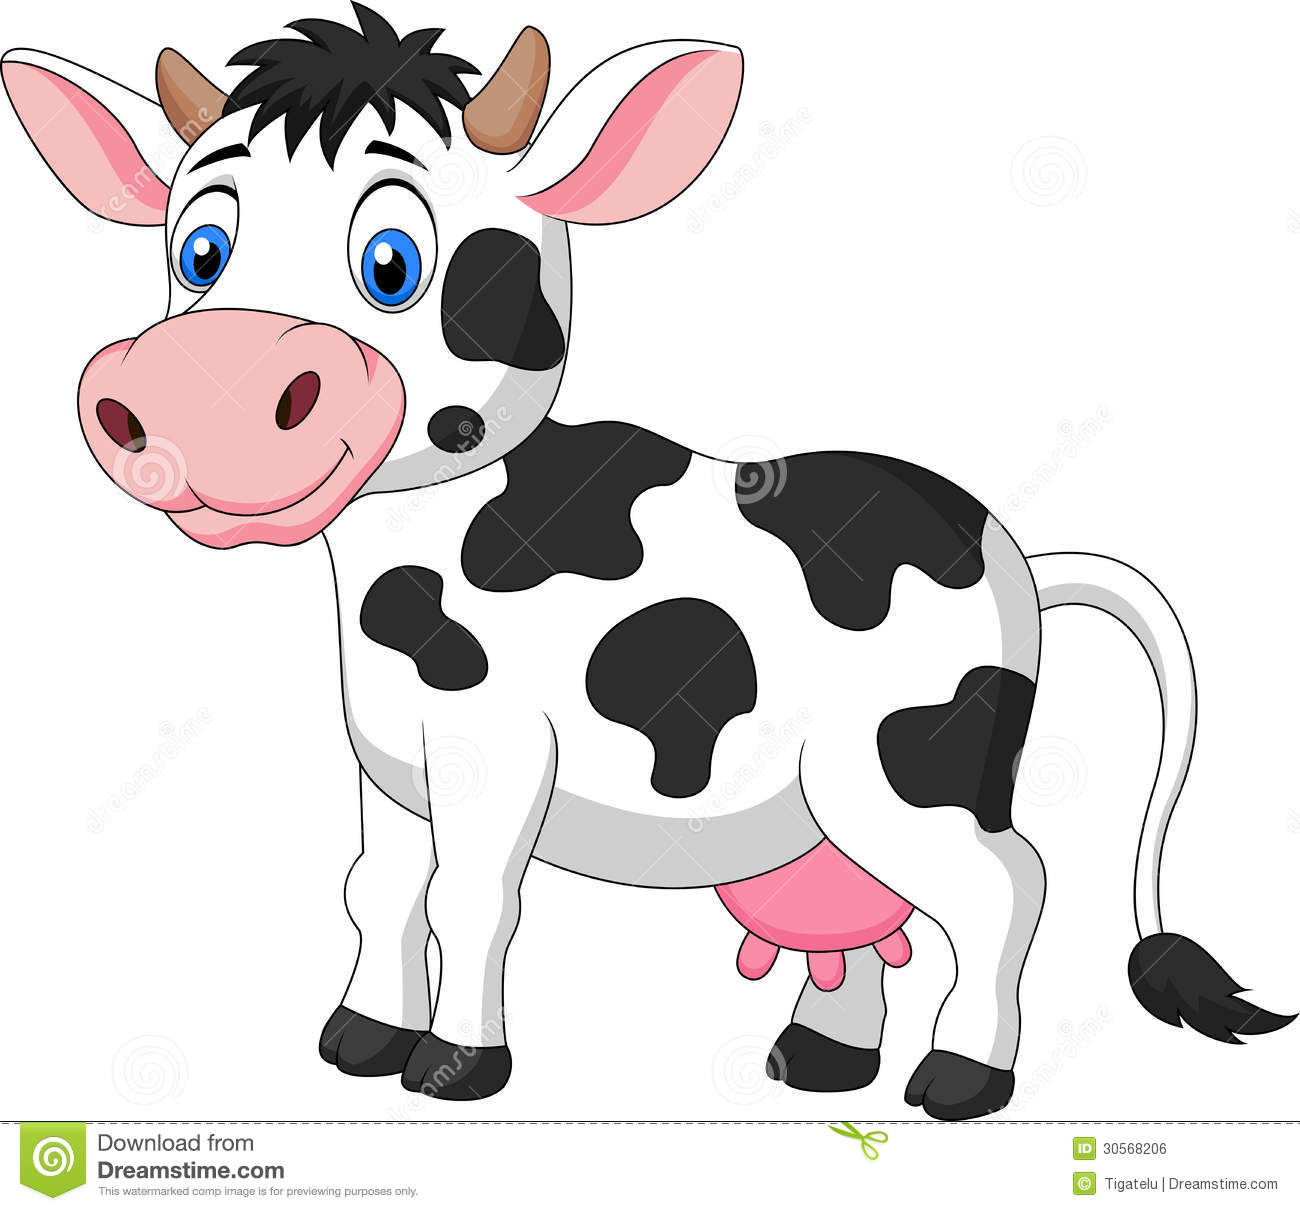 Cute Cow Cartoon Royalty Free Stock Image   Image  30568206